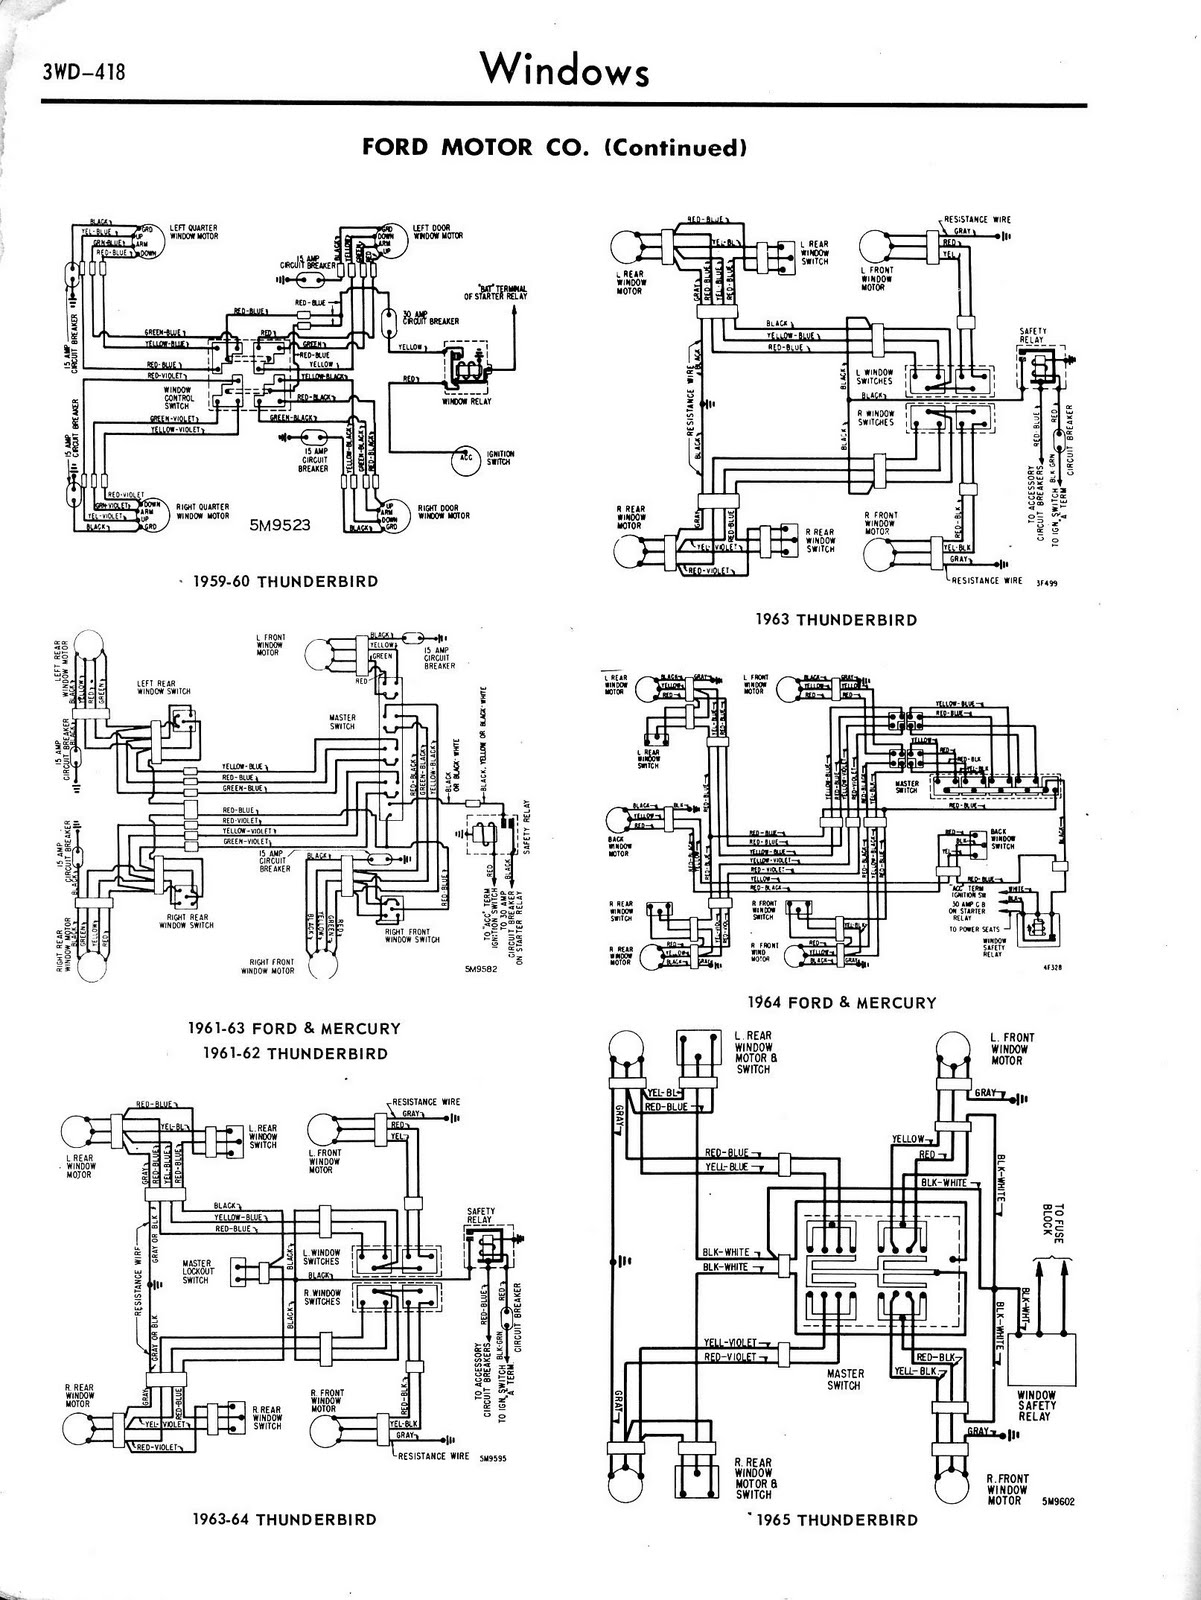 92 Thunderbird Fuse Box Everything About Wiring Diagram 2006 Honda Library Rh 30 Kaufmed De 74